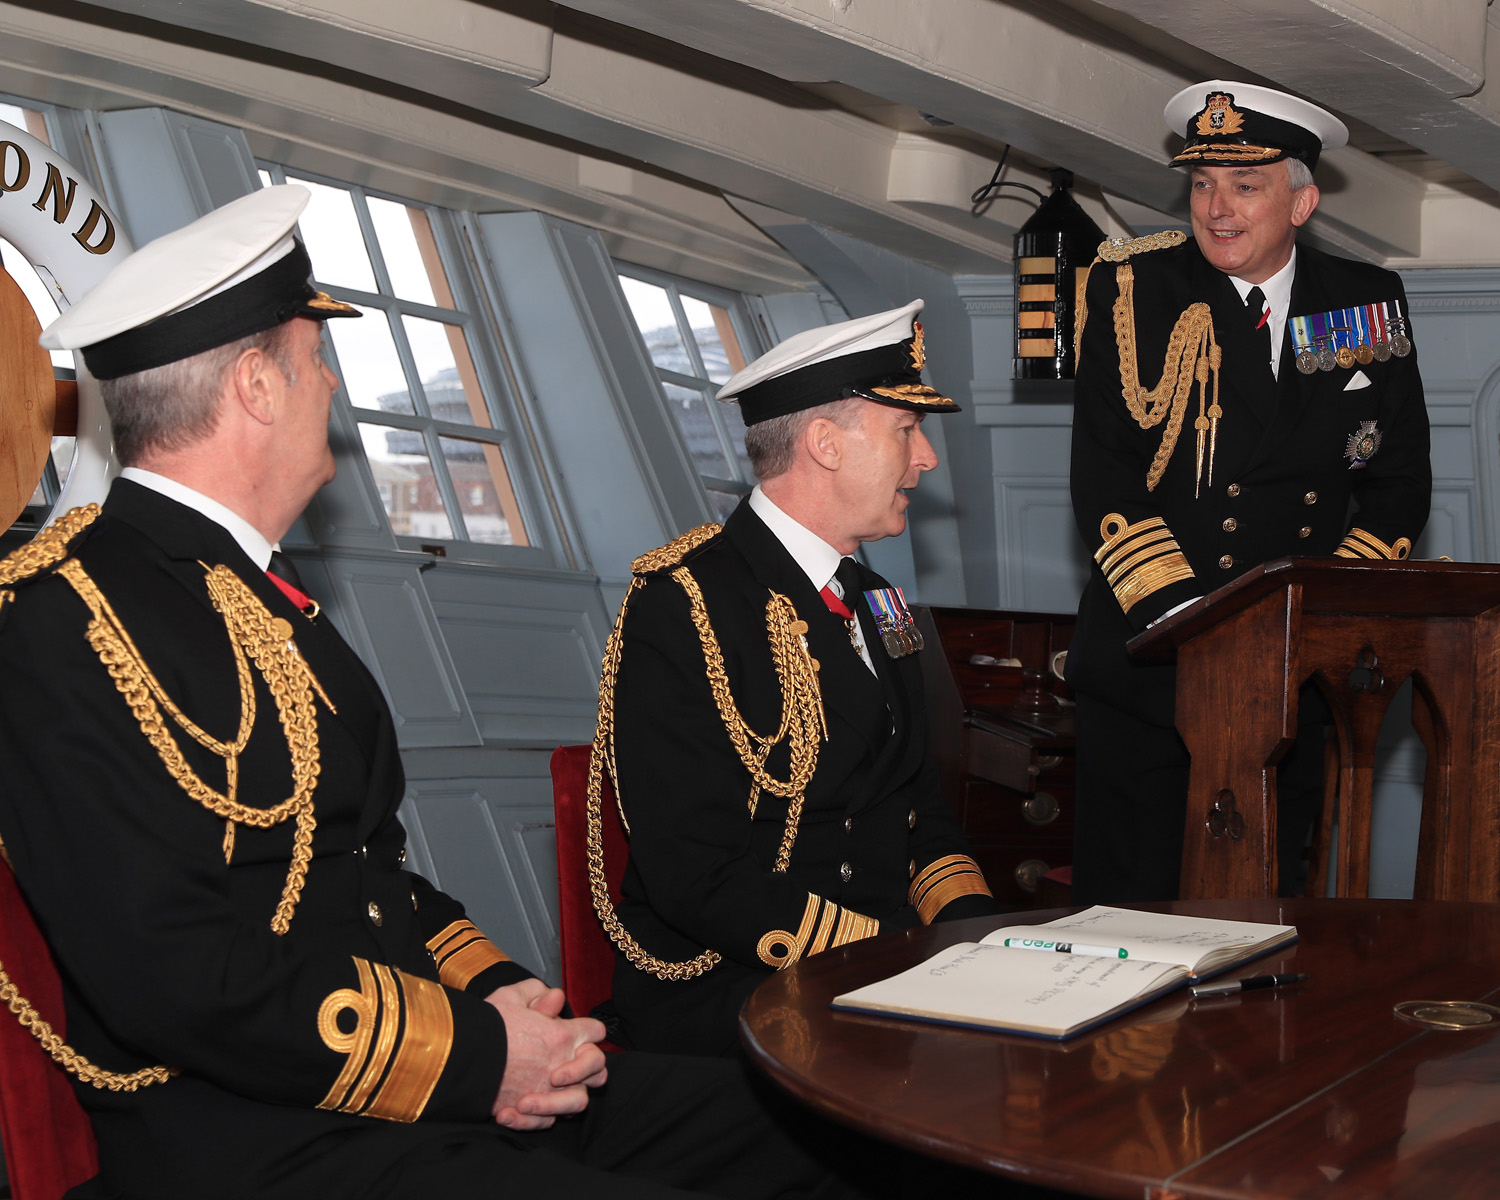 Royal Navy appoints new Second Sea Lord | Royal Navy